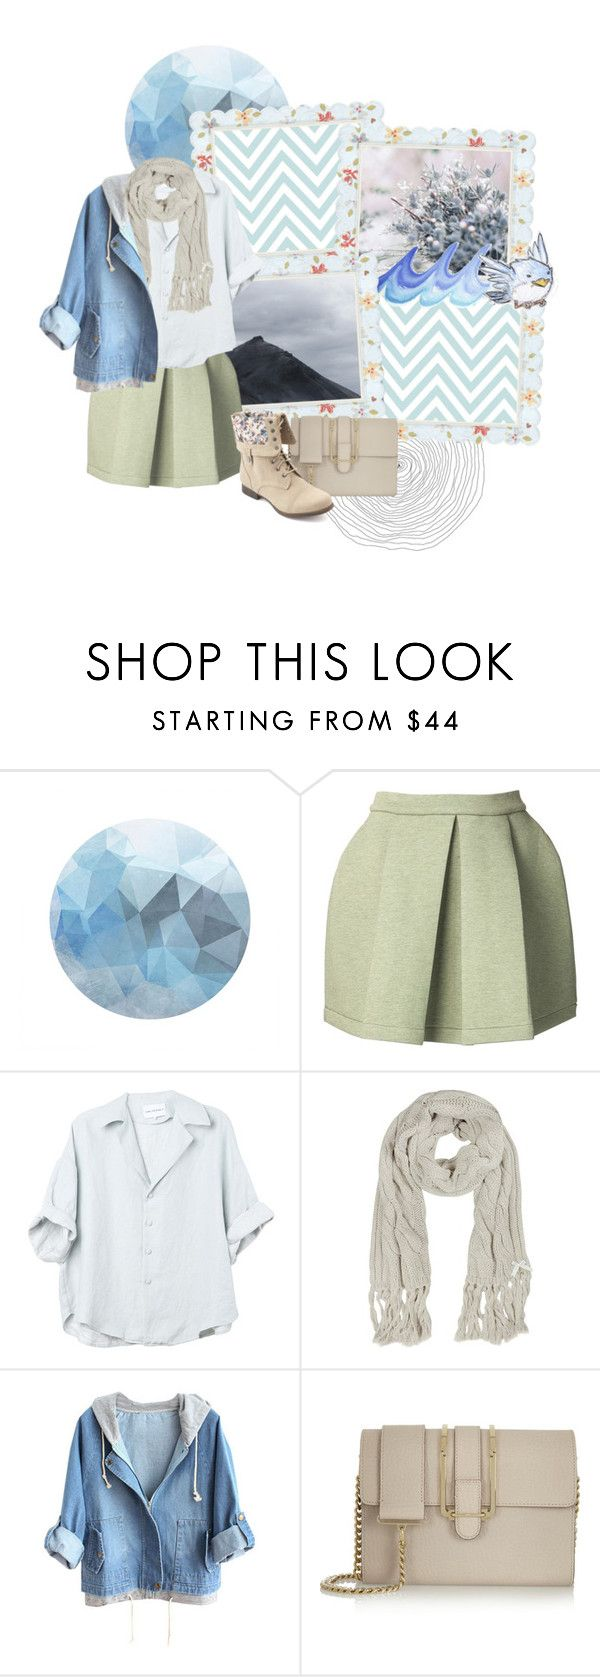 """""""Untitled #247"""" by babybun ❤ liked on Polyvore featuring Funktional, Patrizia Pepe, Chloé and Charlotte Russe"""